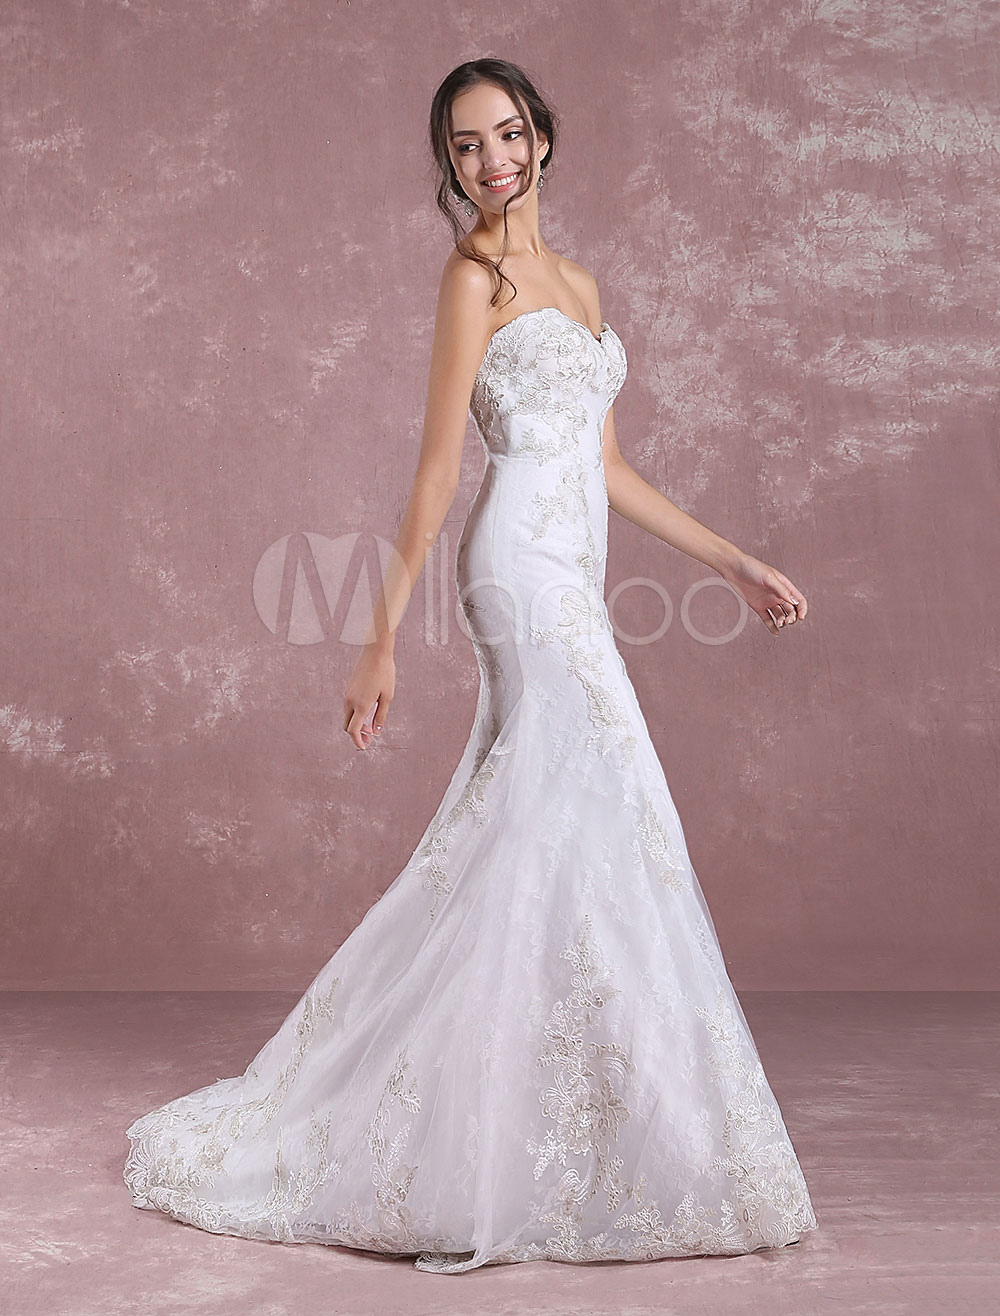 Summer Wedding Dresses 2018 Mermaid Lace Bridal Dress Ivory Sweetheart Strapless Applique Bridal Gown With Train